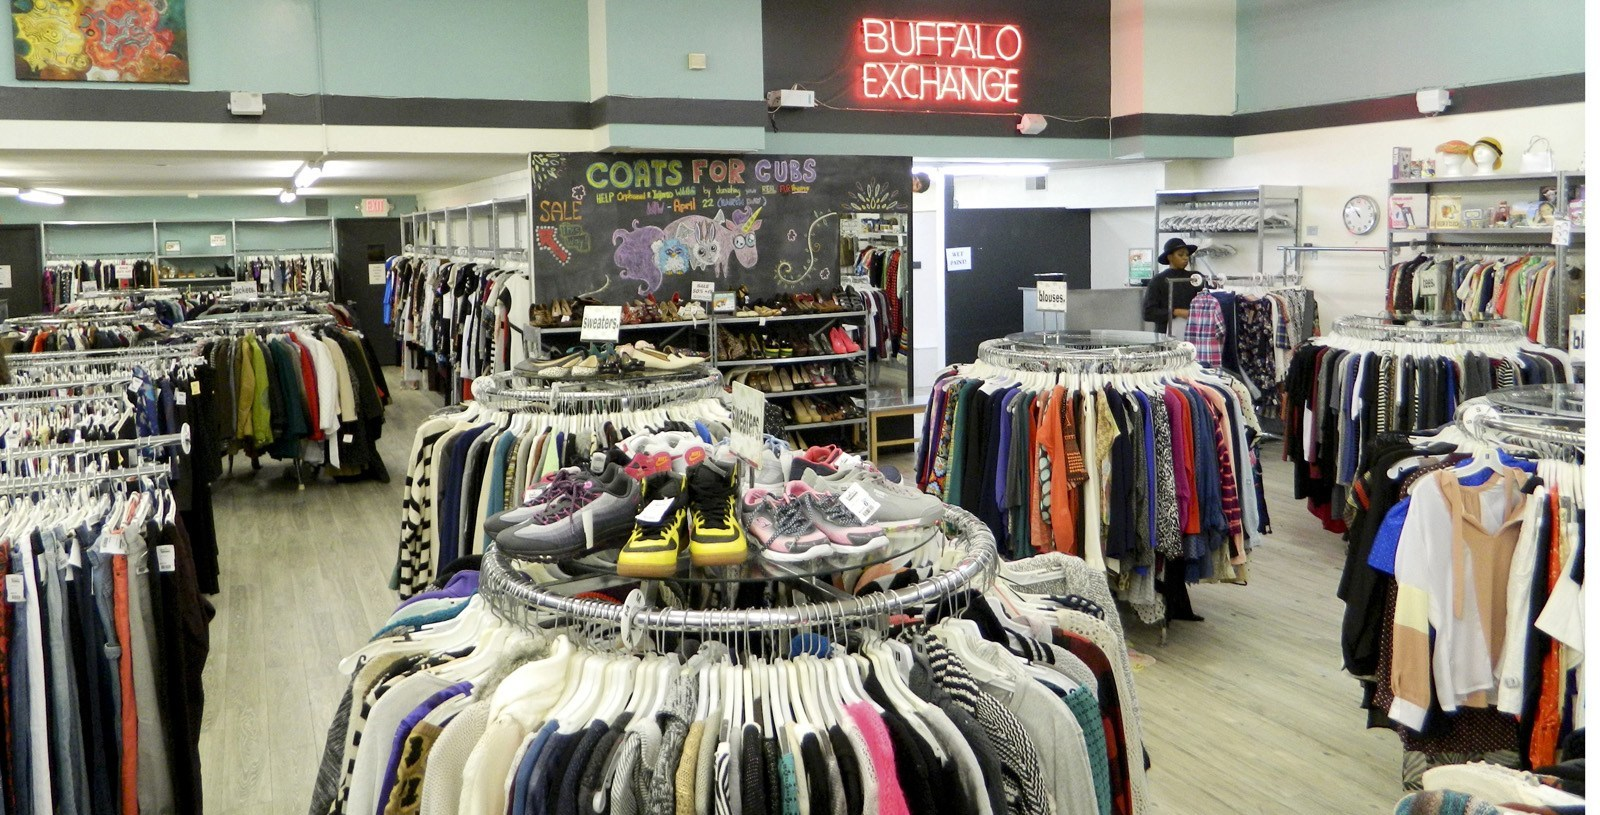 Buffalo Exchange - You can buy, sell, or trade your clothes and accessories at Buffalo Exchange for cash or trade on the spot. Check out one of its 48 locations across the US.